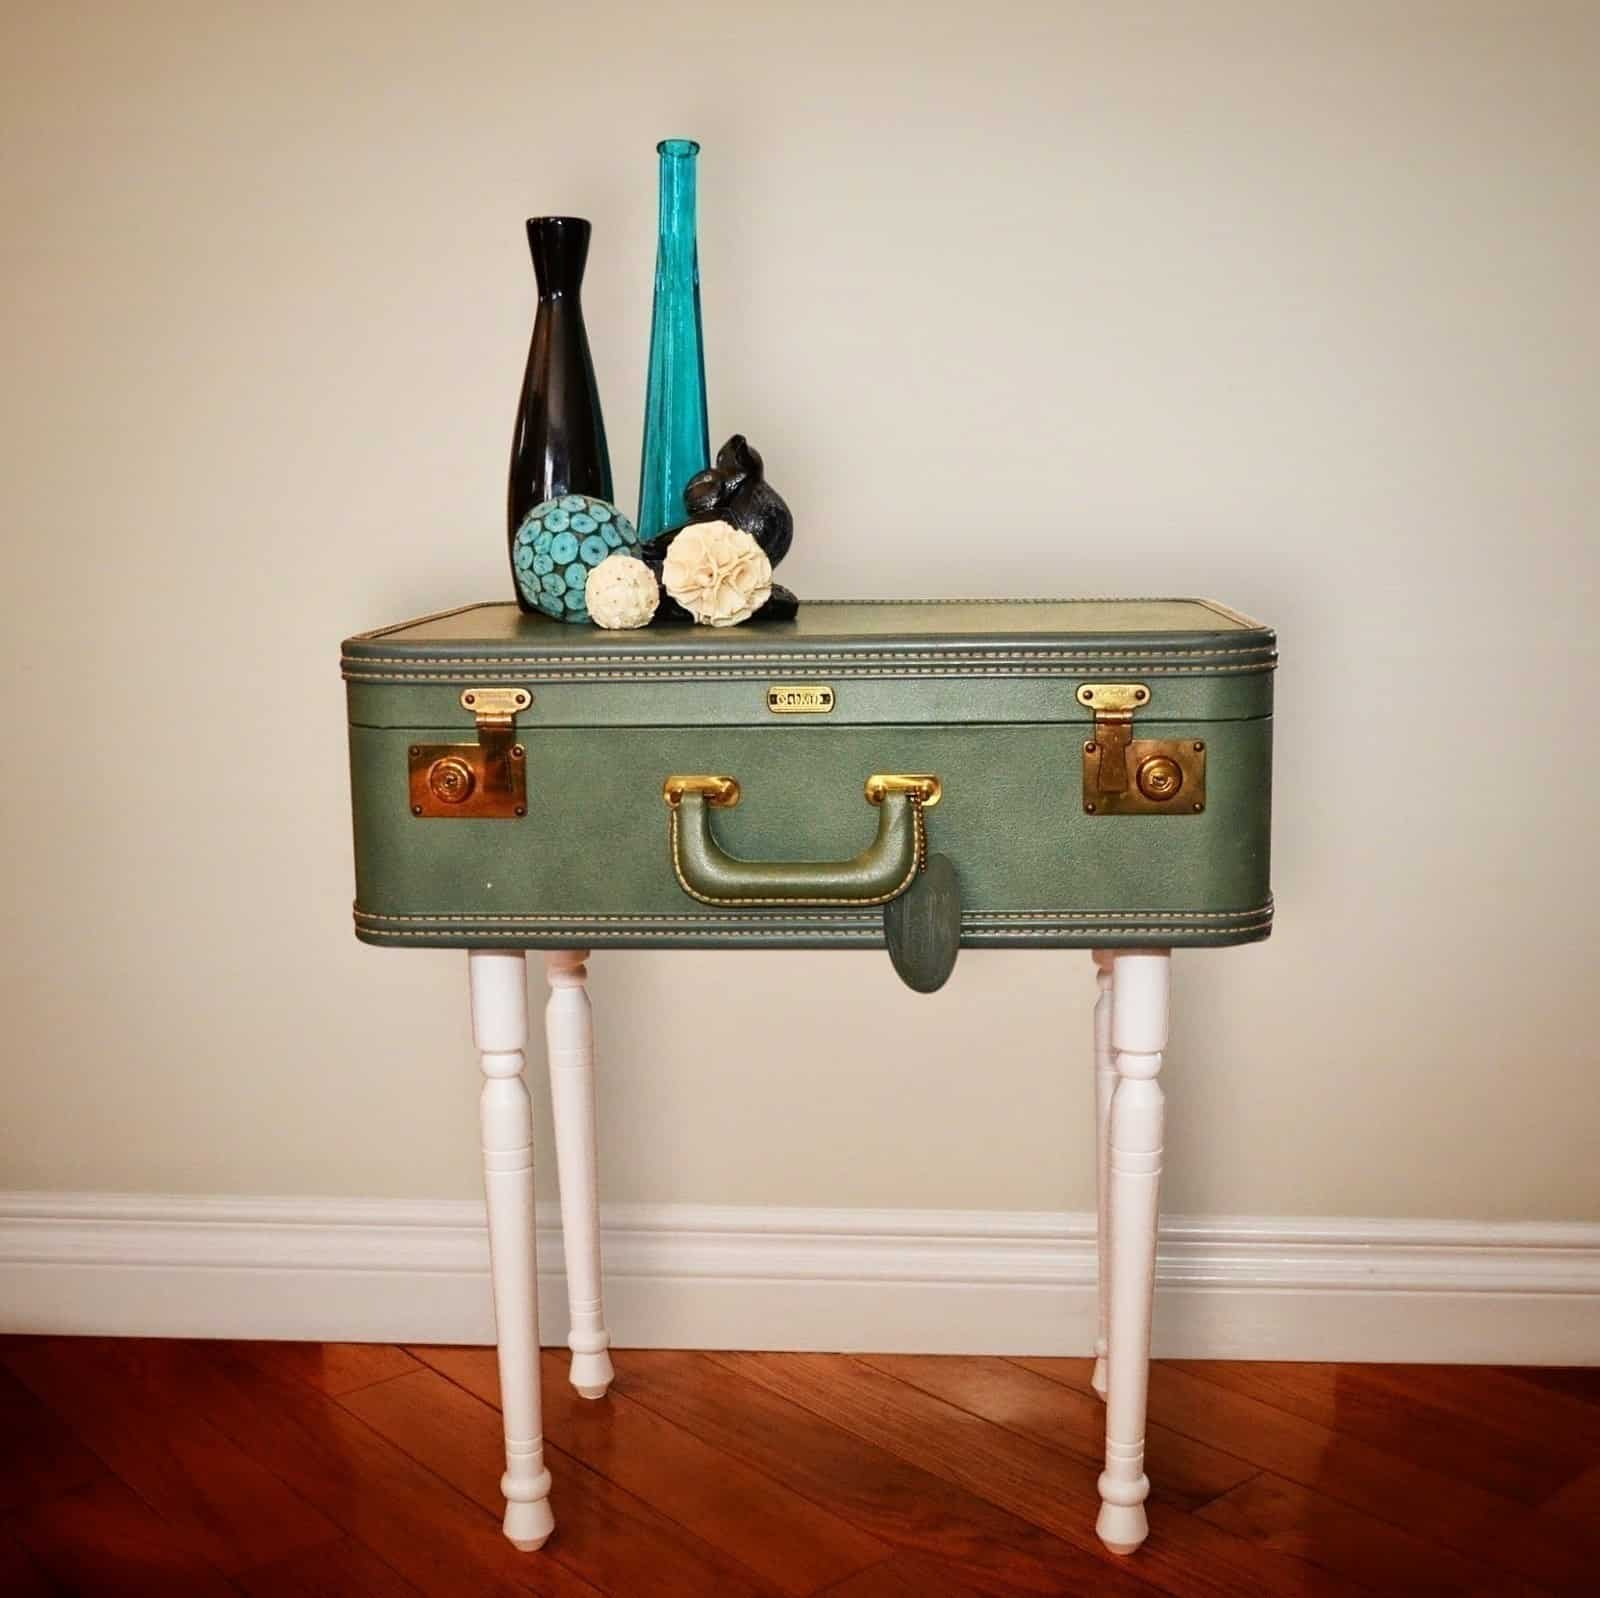 Tall vintage suitcase side table